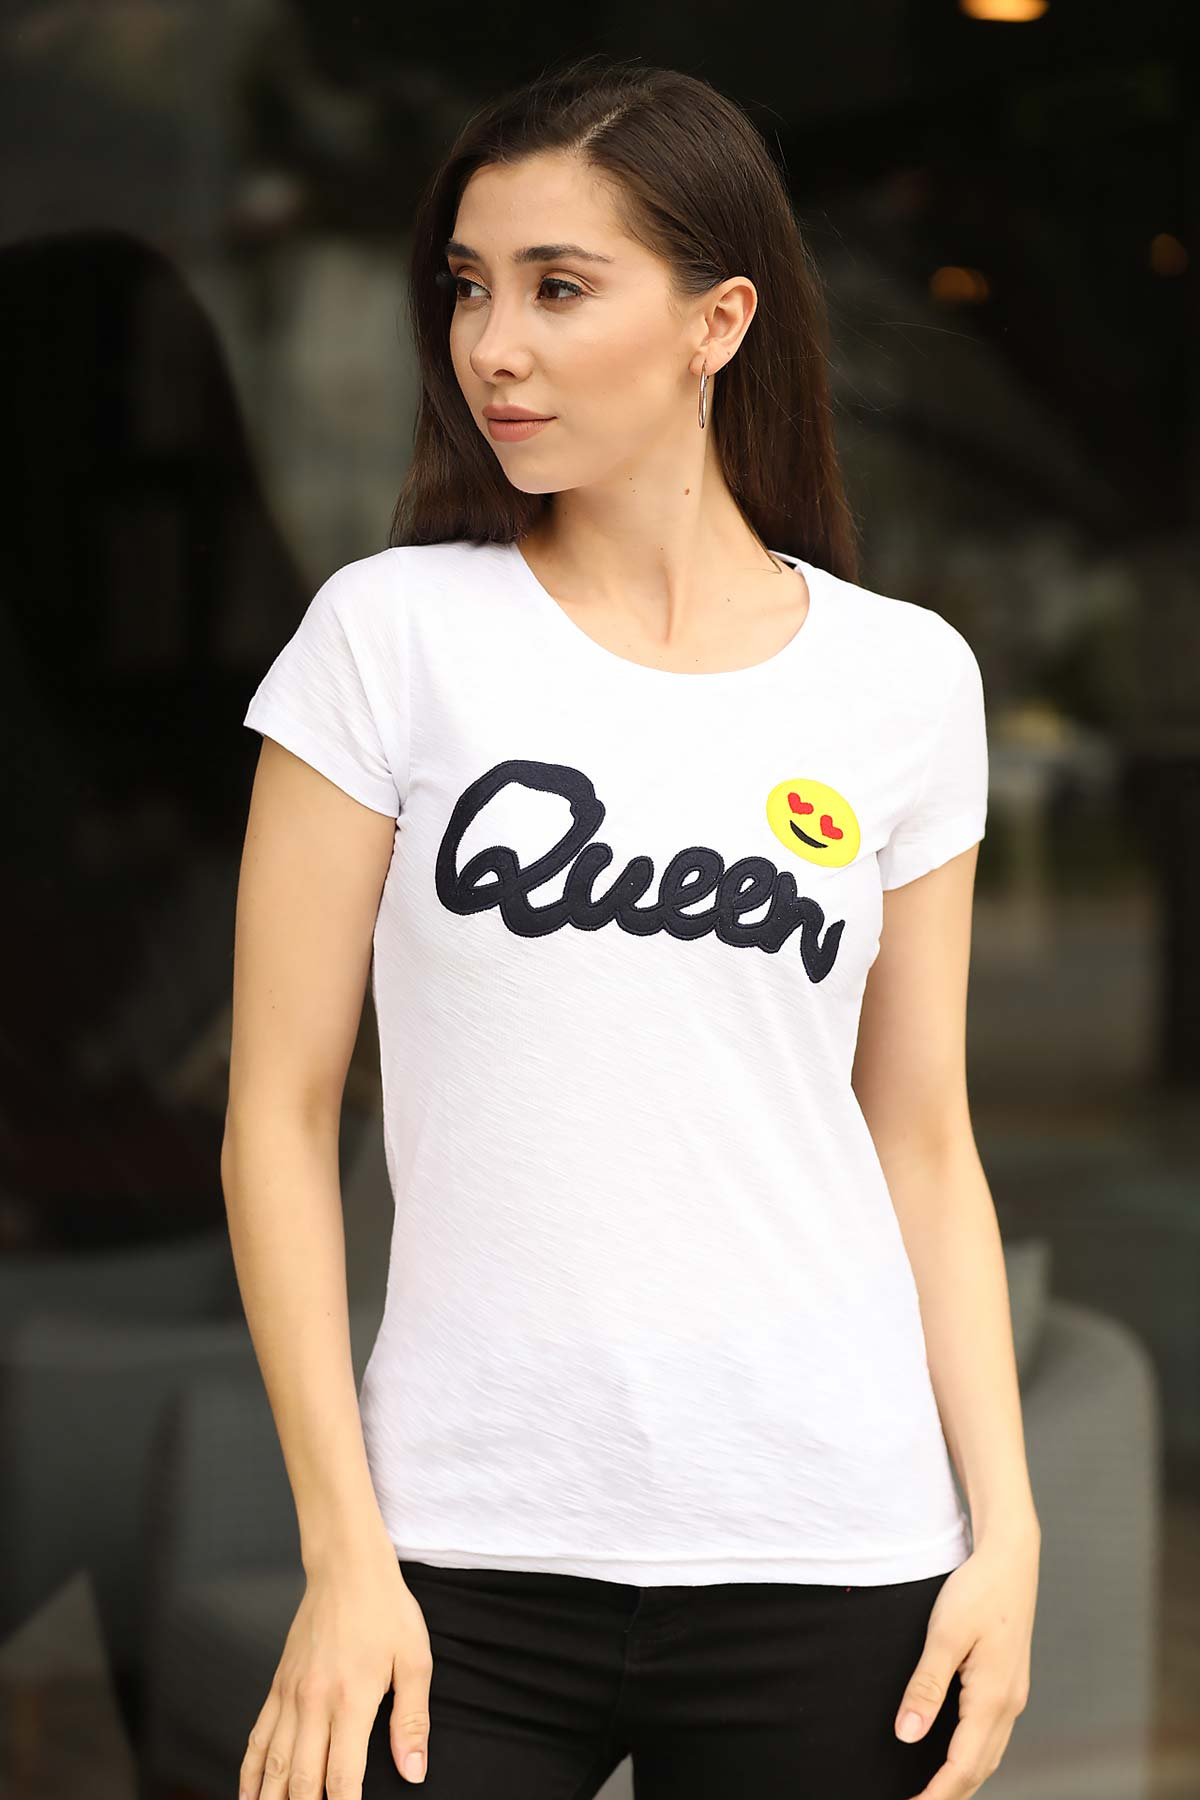 Women's Front Printed White T-shirt